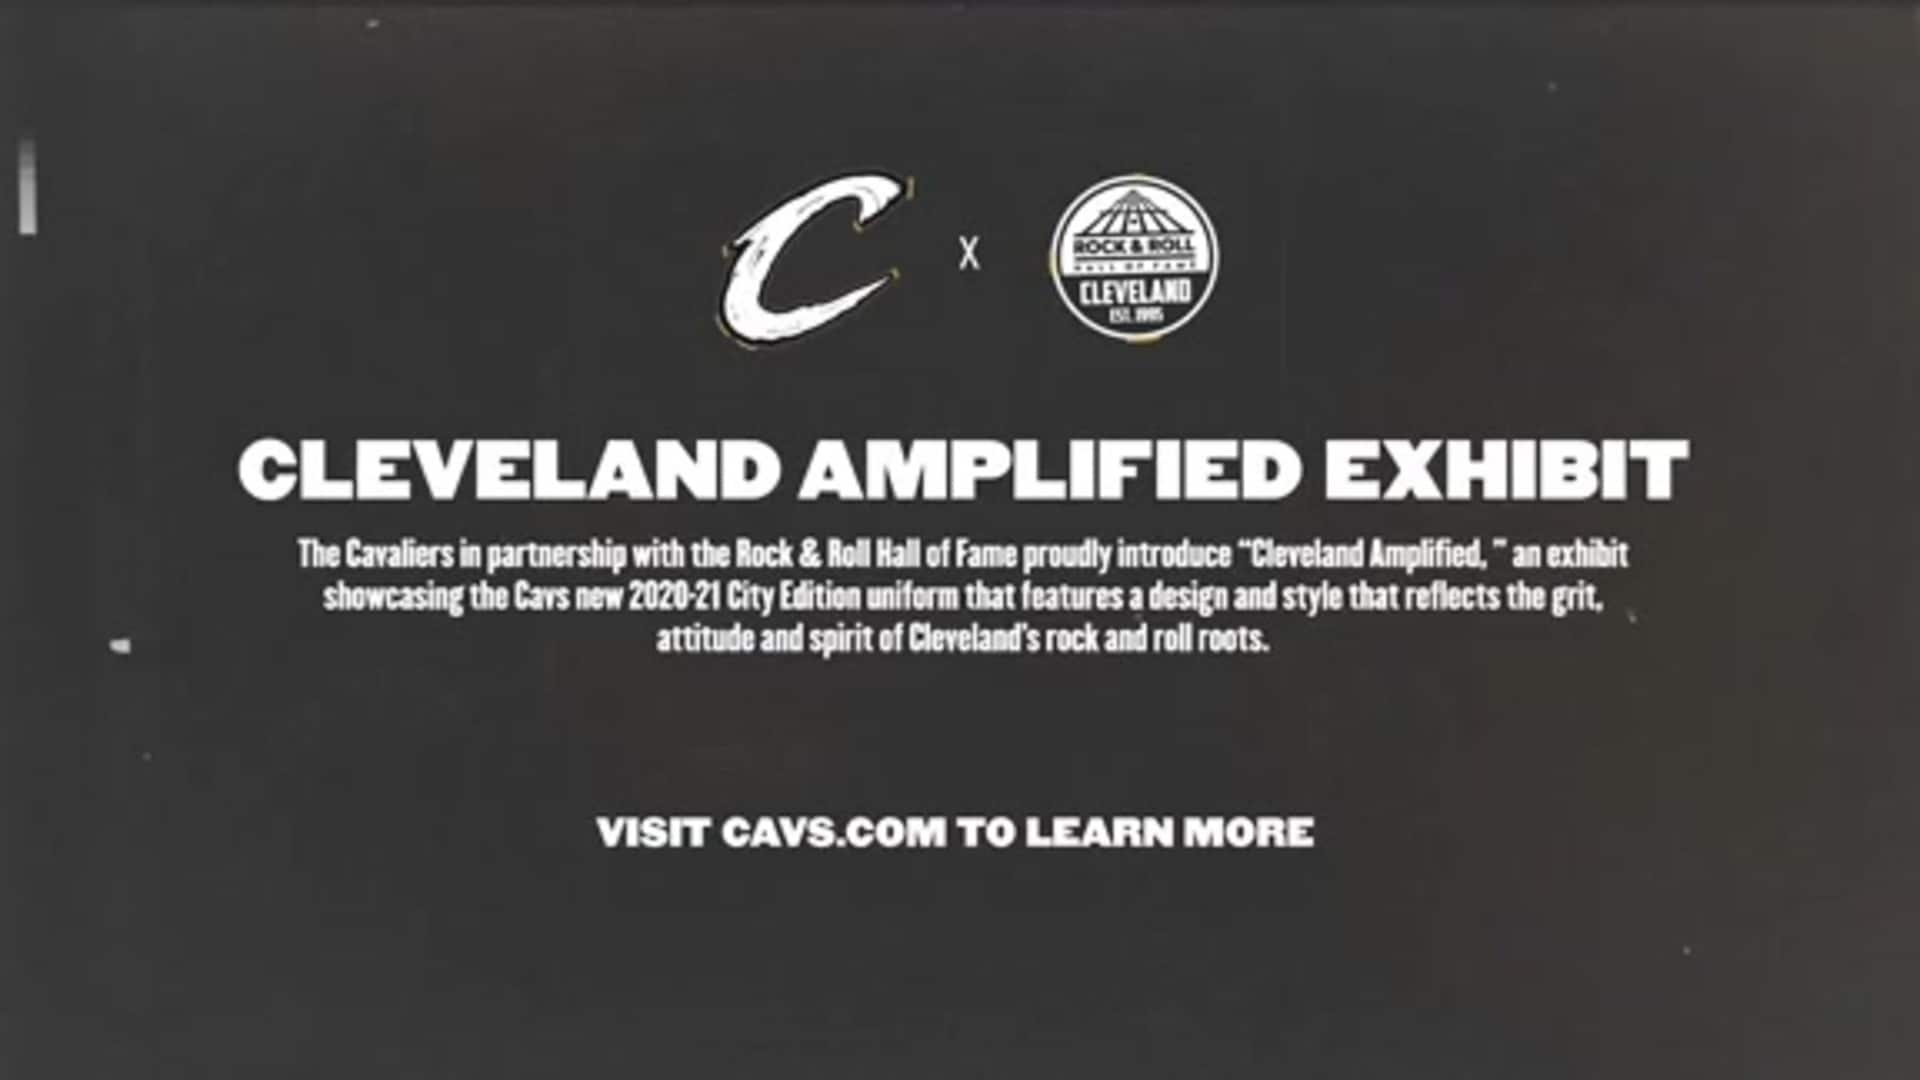 Cavs, Rock and Roll Hall of Fame Unveil Cleveland Amplified Exhibit